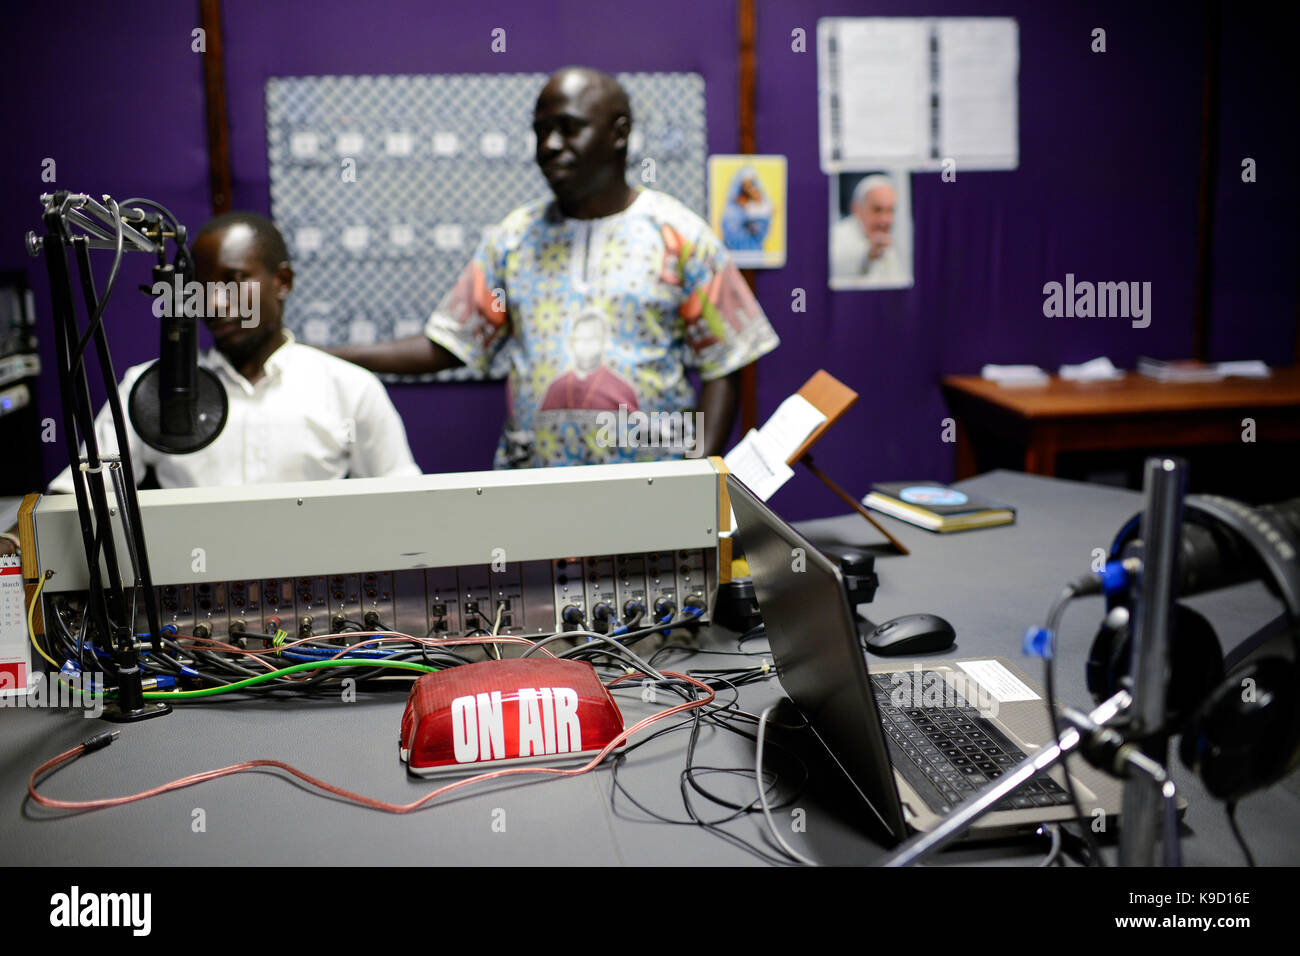 UGANDA, Arua, Radio Pacis, on air, live broadcasting studio, Station Manager Gaetano Apamaku - Stock Image